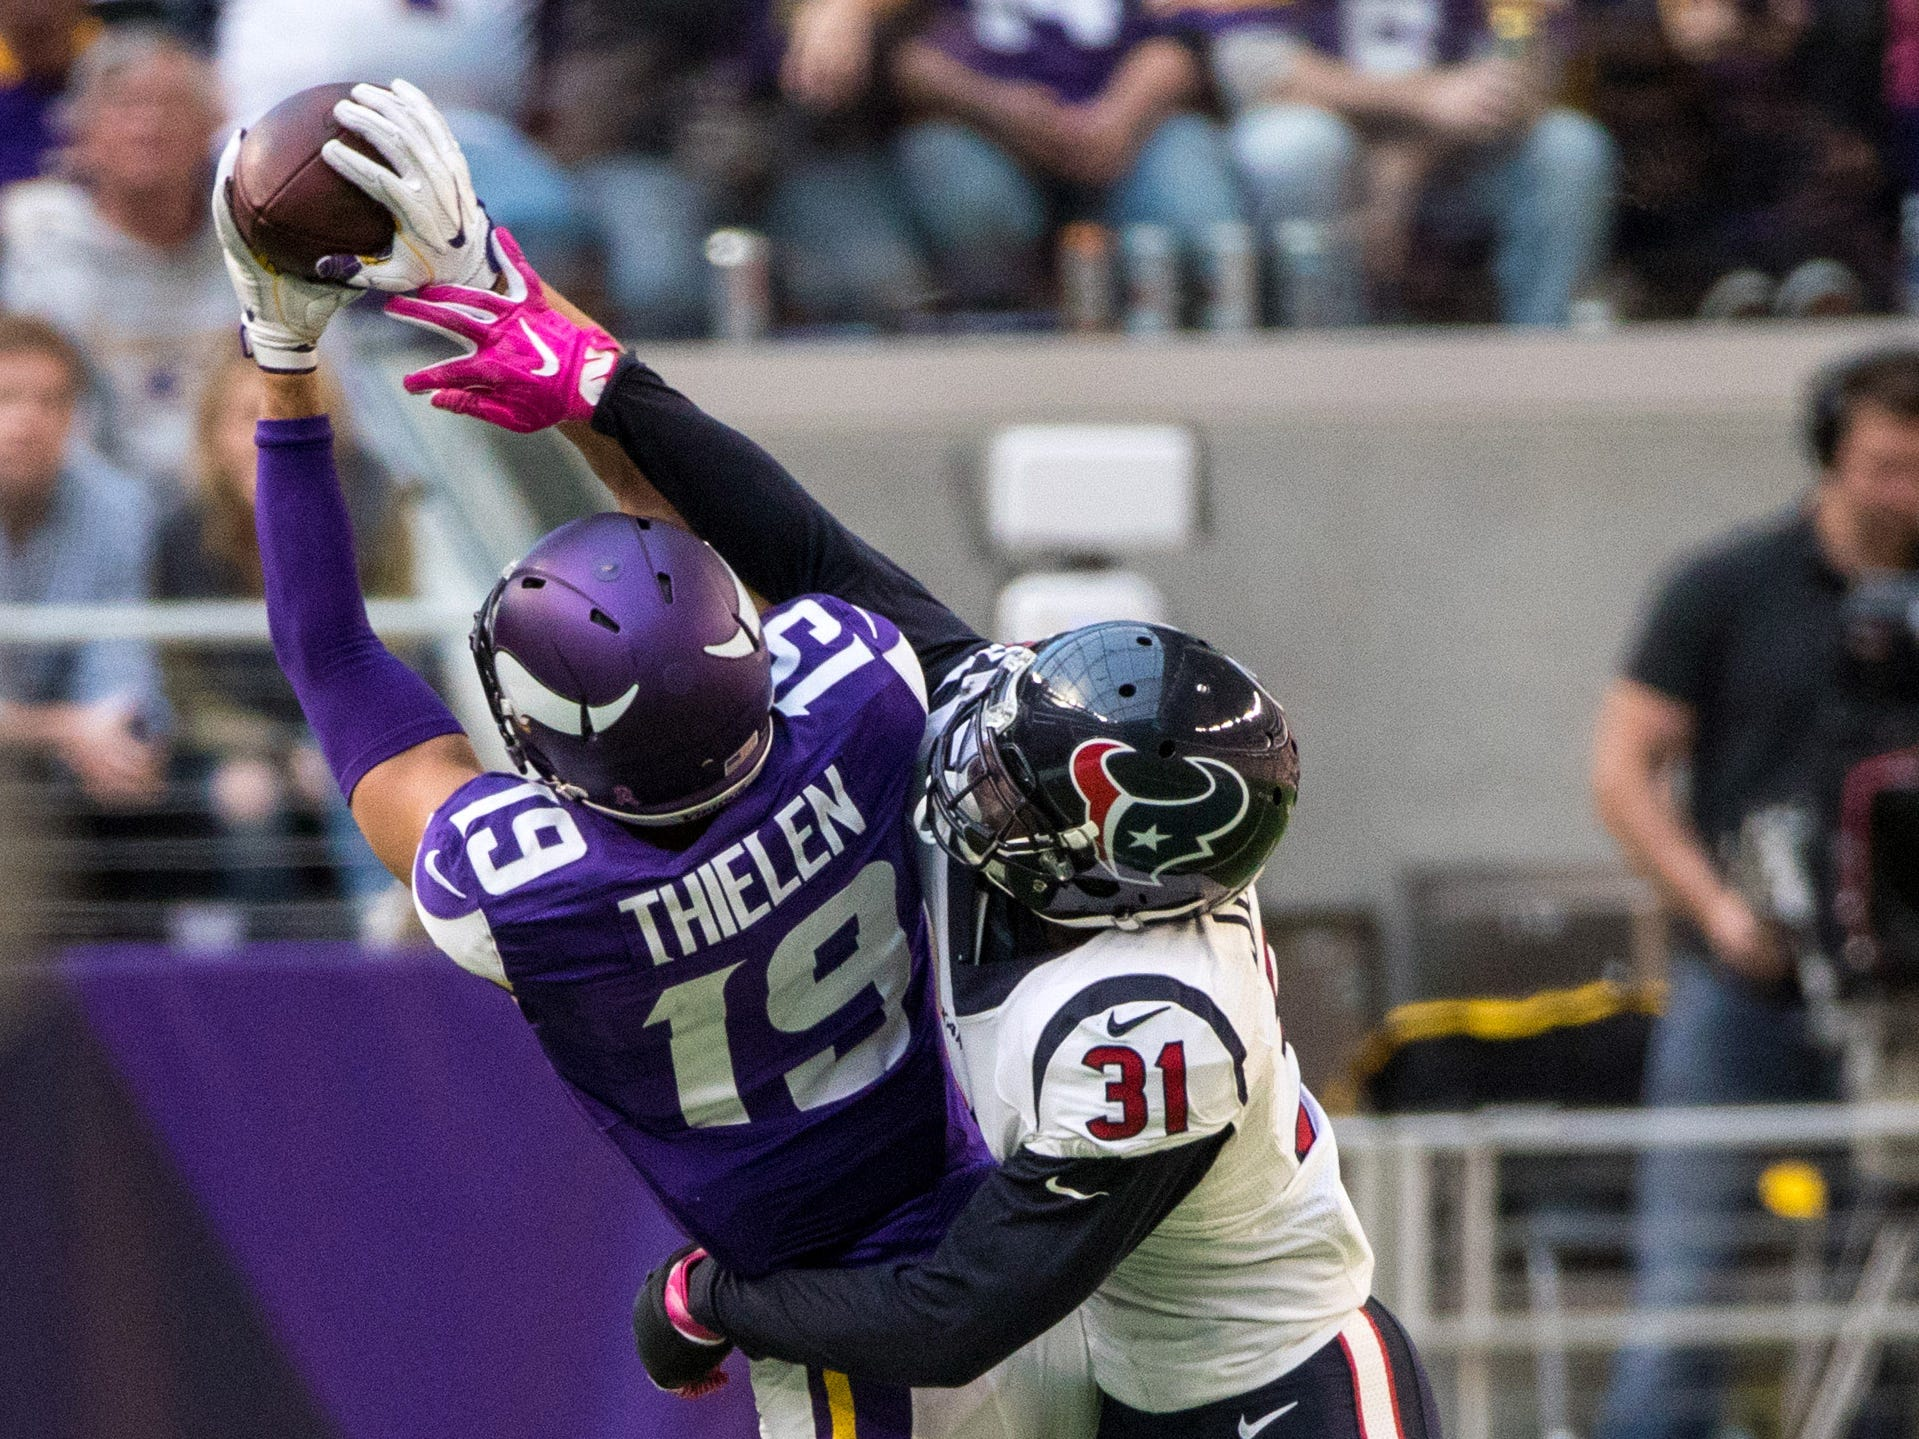 Oct 9, 2016; Minneapolis, MN, USA; Minnesota Vikings wide receiver Adam Thielen (19) catches a pass over Houston Texans cornerback Charles James II (31) during the fourth quarter at U.S. Bank Stadium. The Vikings defeated the Texans 31-13.